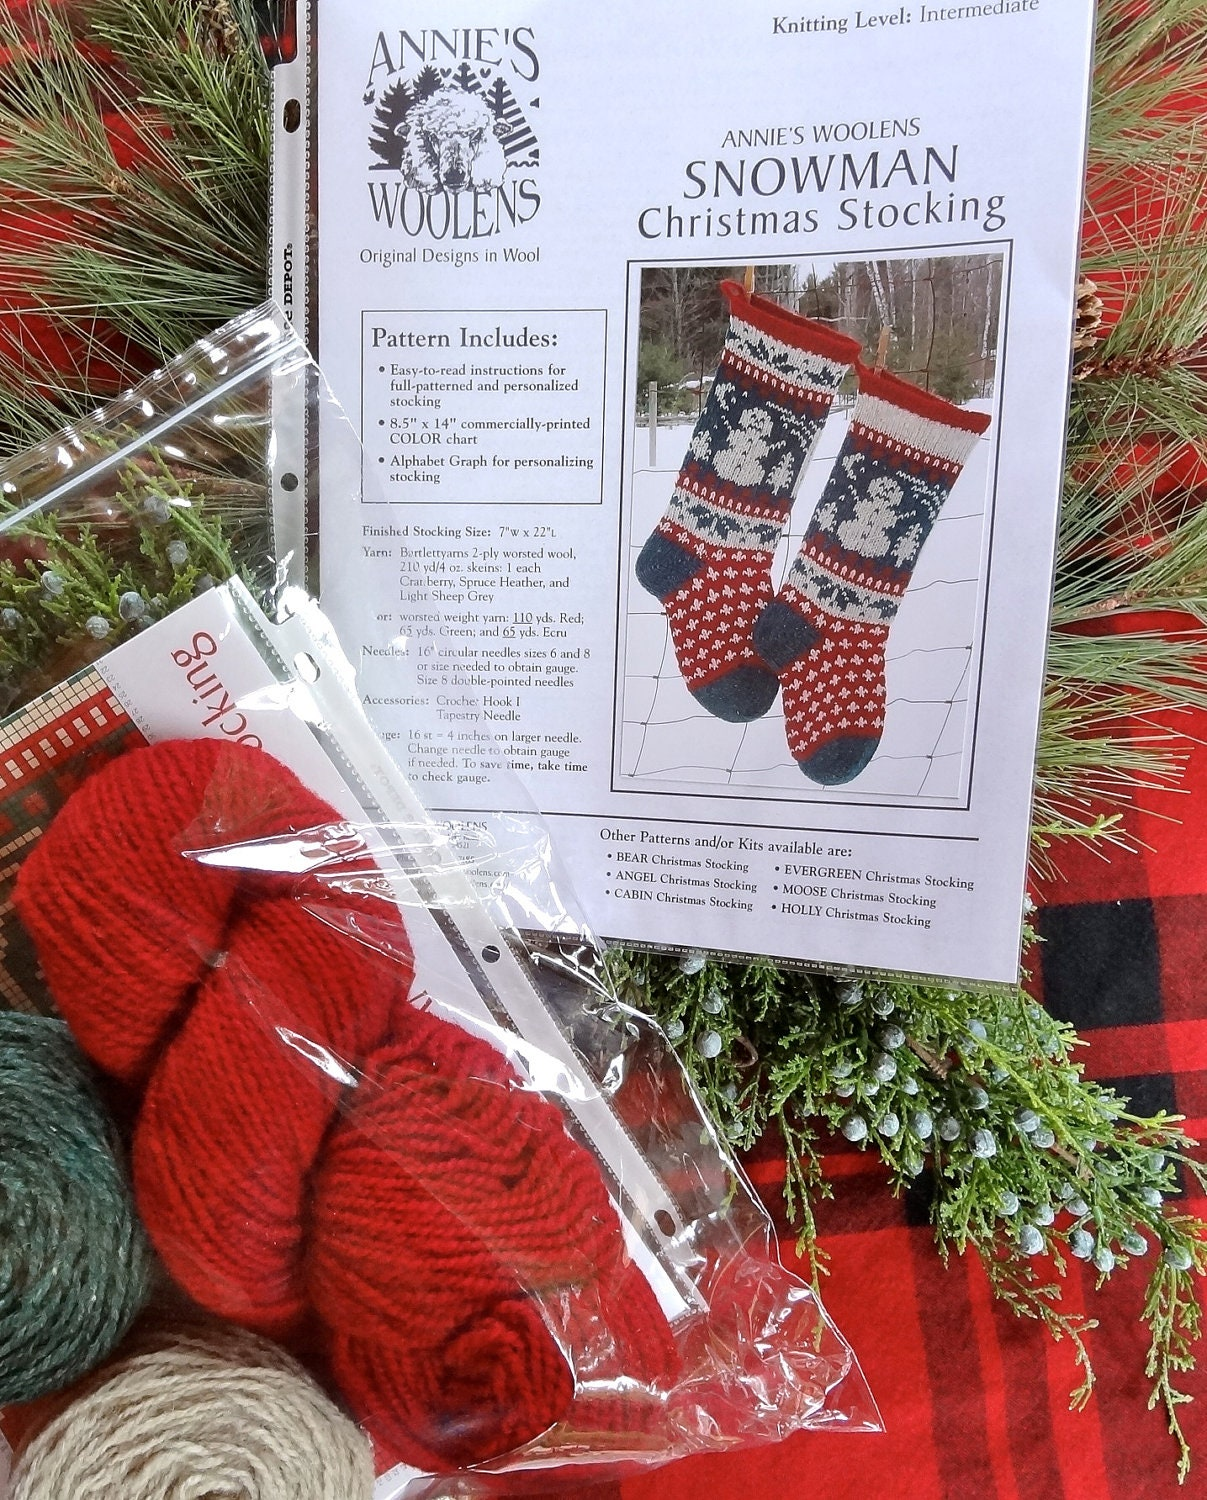 Knit Pattern For Christmas Stocking Kit : Knitted Snowman Christmas Stocking KIT with pattern by